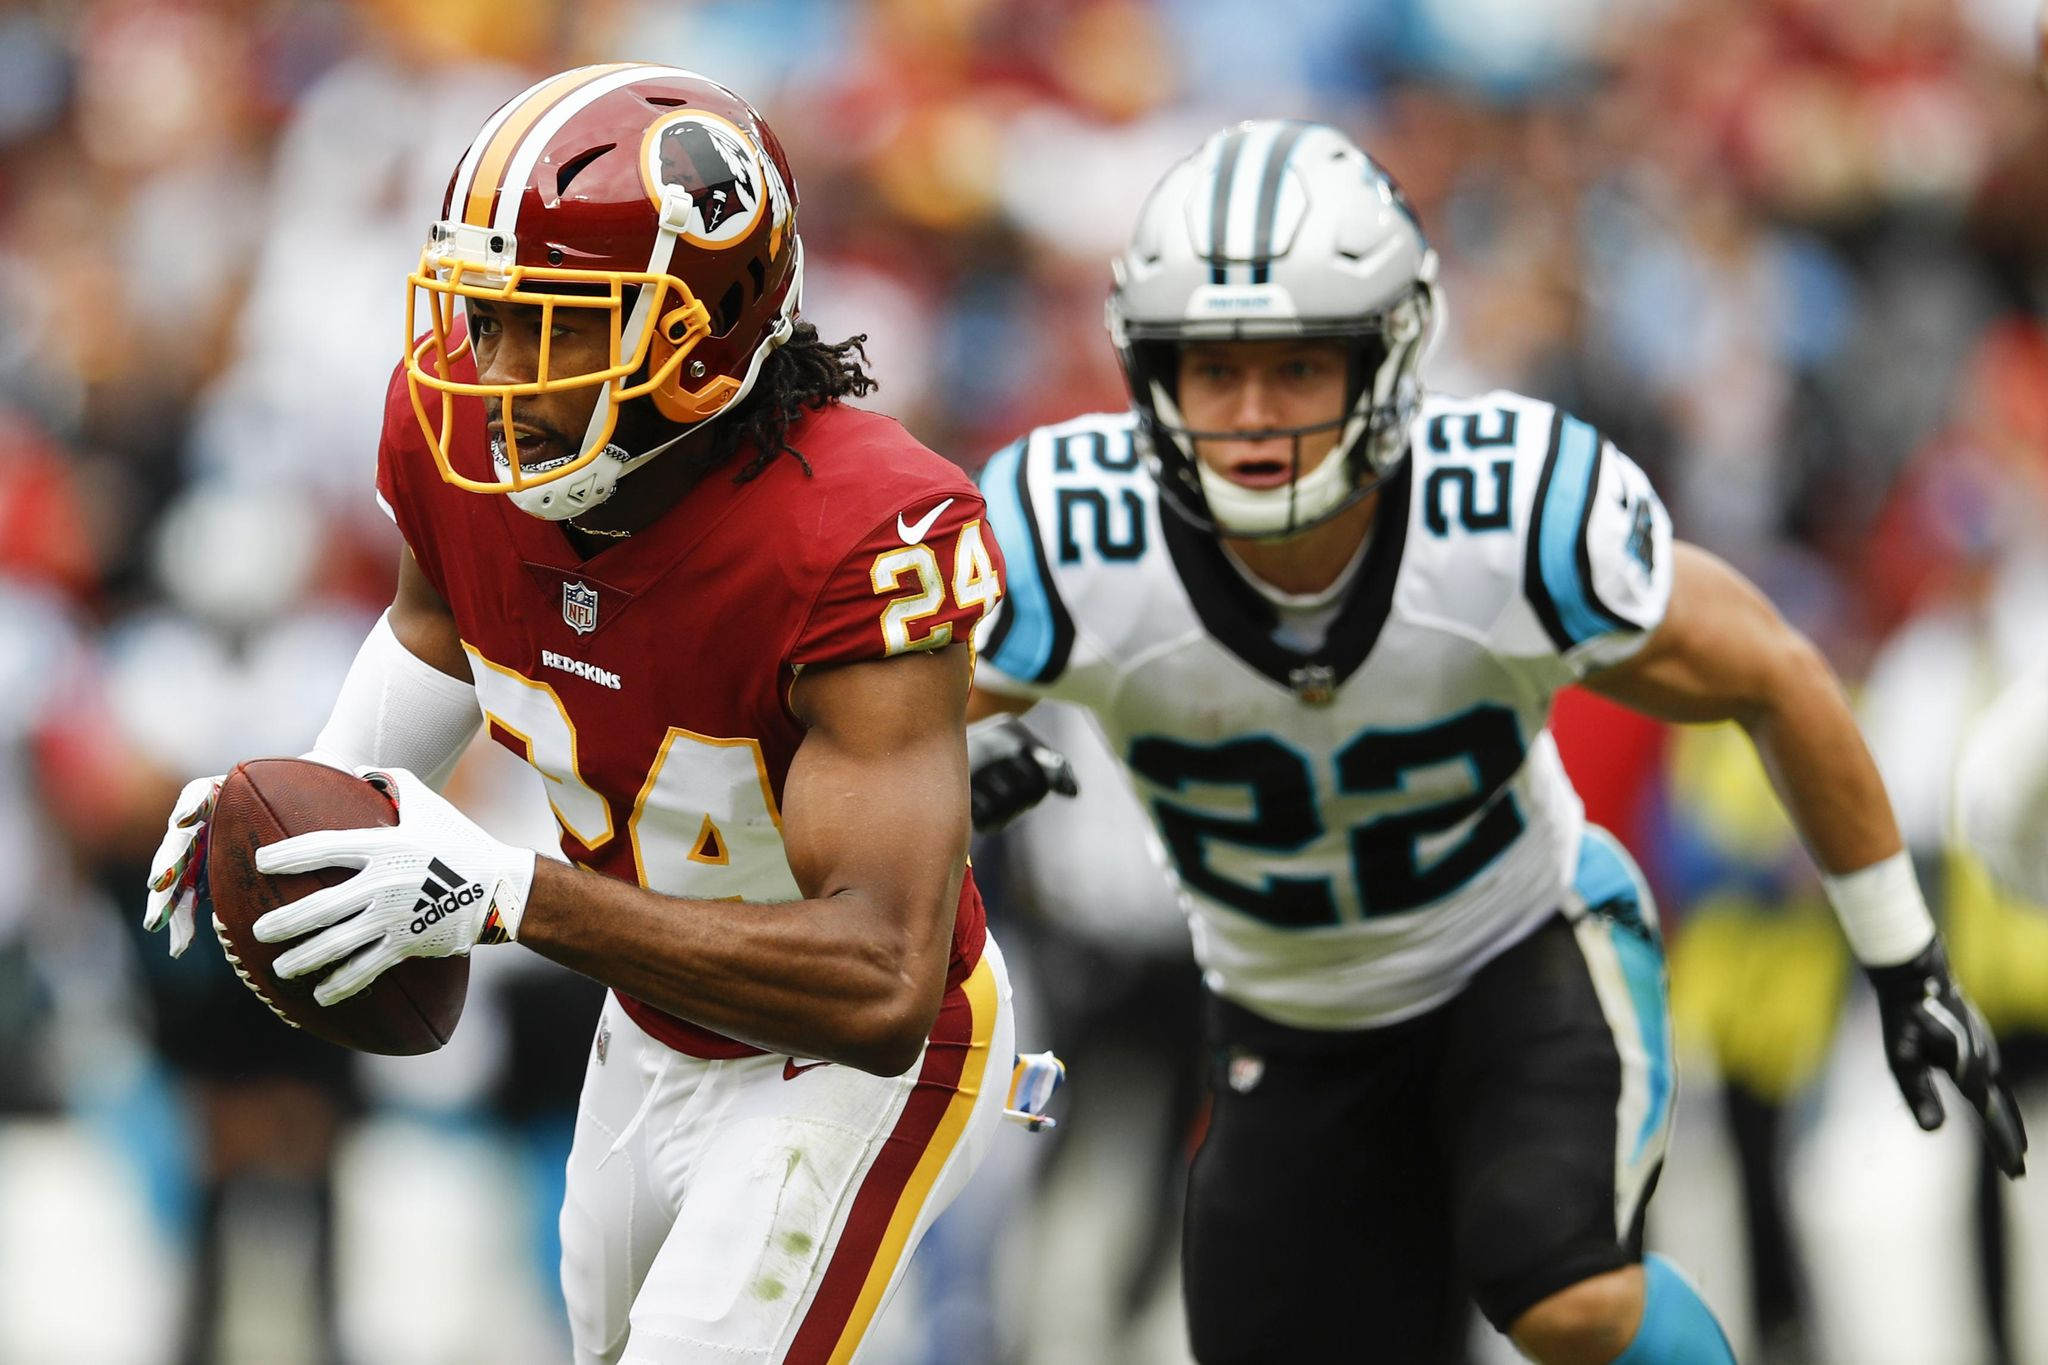 Panthers_redskins_football_75084_s2048x1365